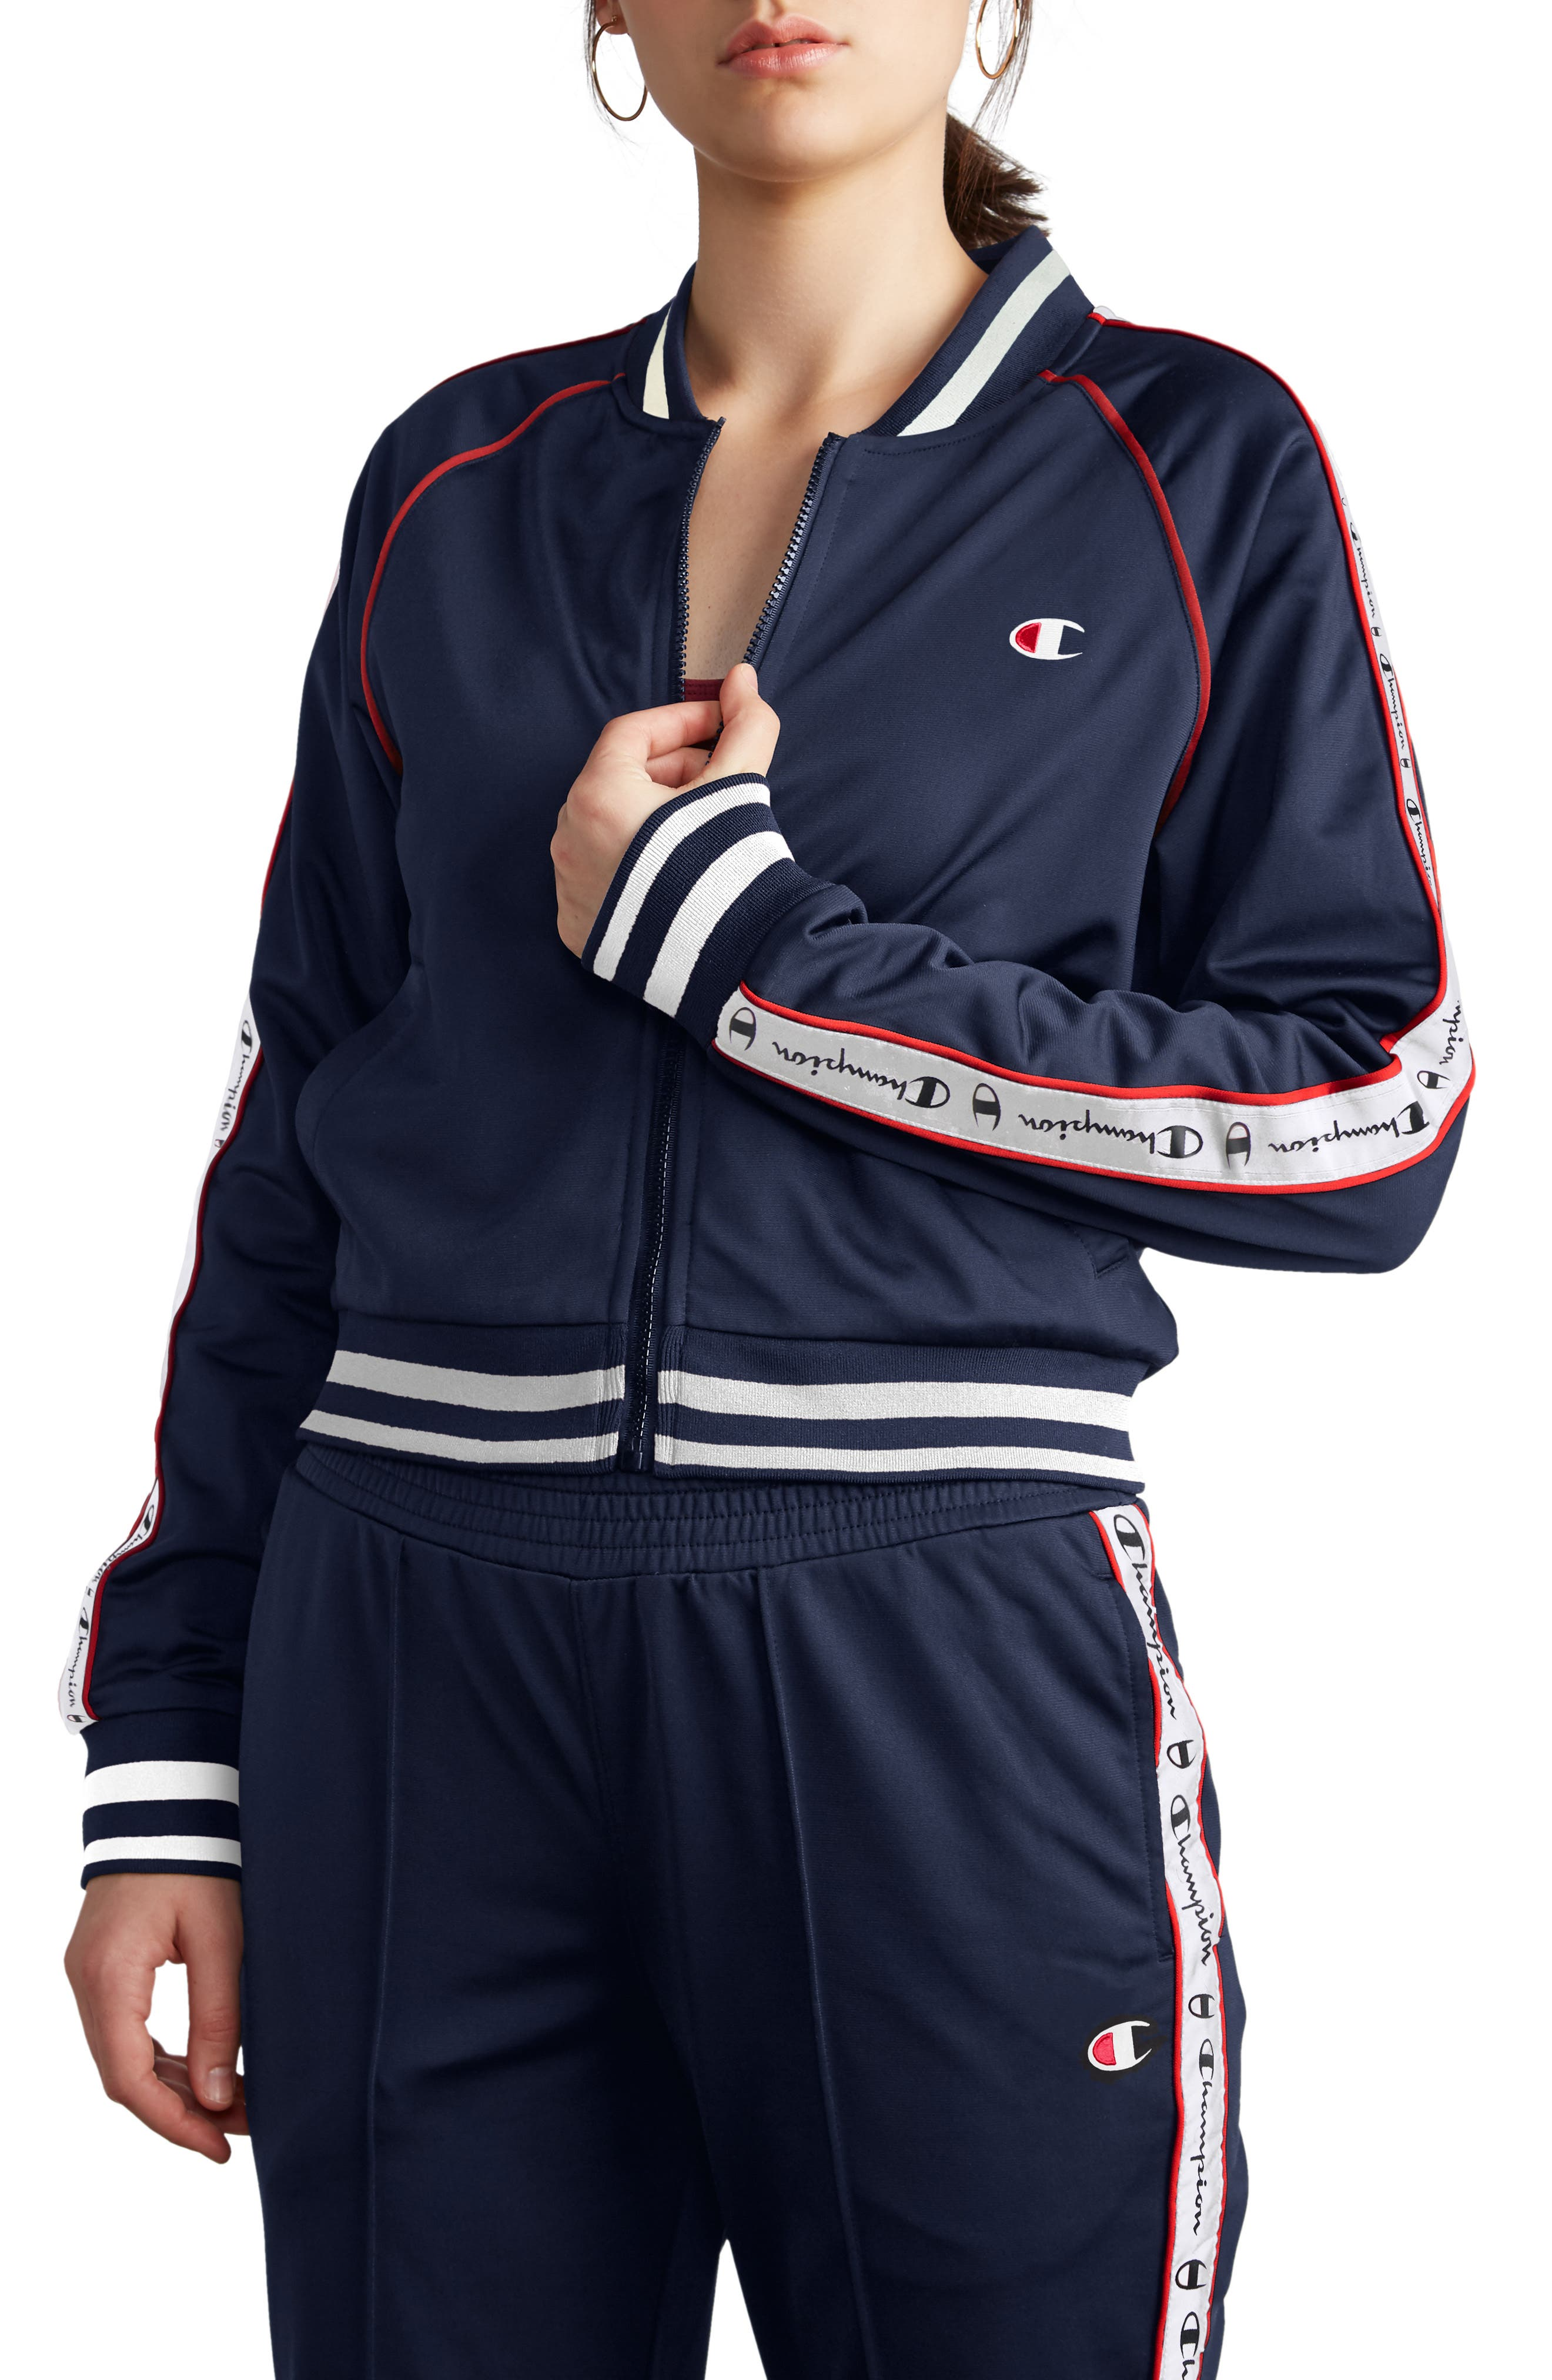 Womens Champion Clothing Nordstrom